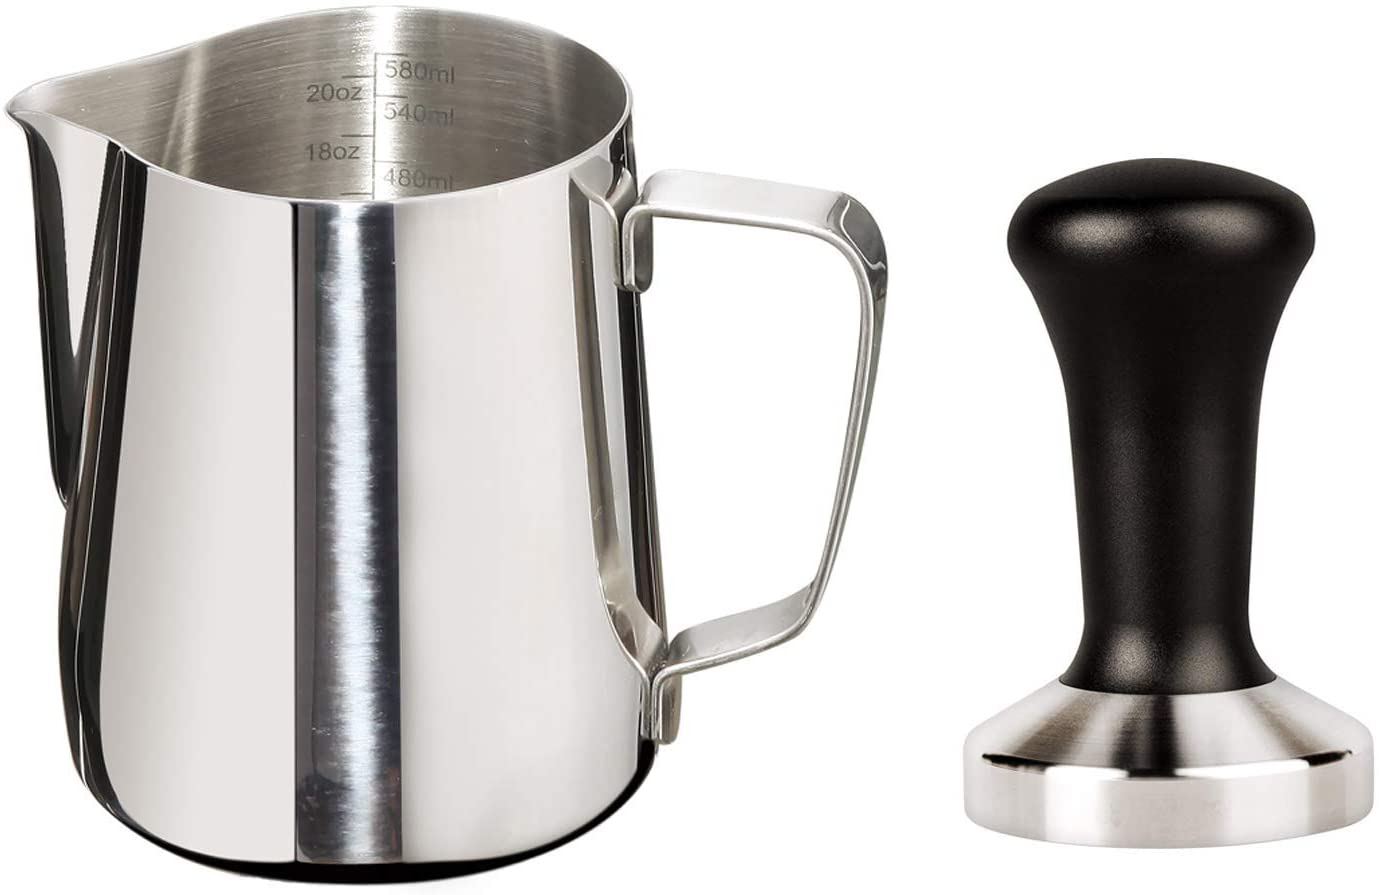 Joytata 20oz Milk Frothing Pitcher 51mm Stainless Steel Espresso Tamper Set-Milk Pitcher with Measurement Scale,Stainless Steel Steam Pitcher Coffee Tamper Set Perfect for Espresso Machine-Froth Cup